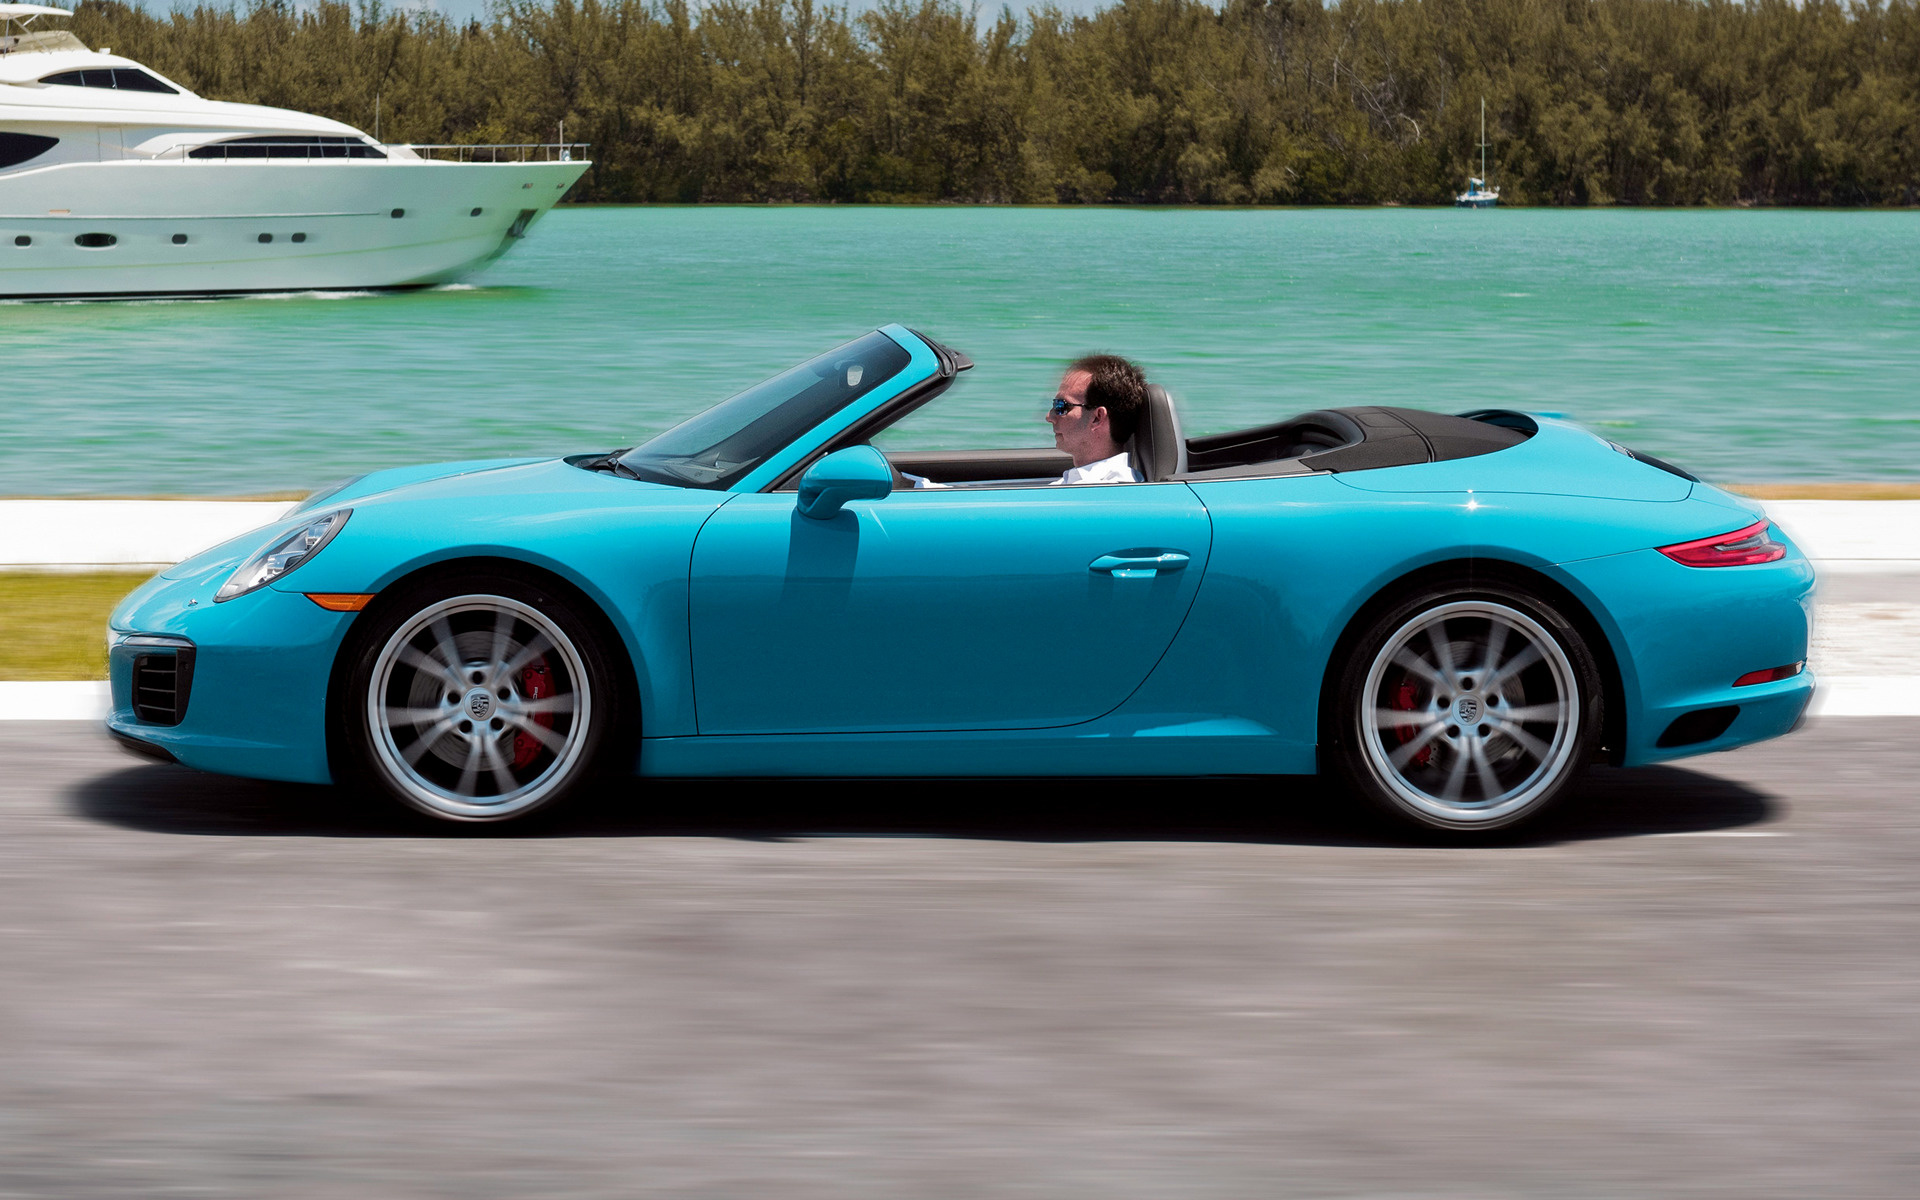 2017 Porsche 911 Carrera S Cabriolet US   Wallpapers and HD 1920x1200